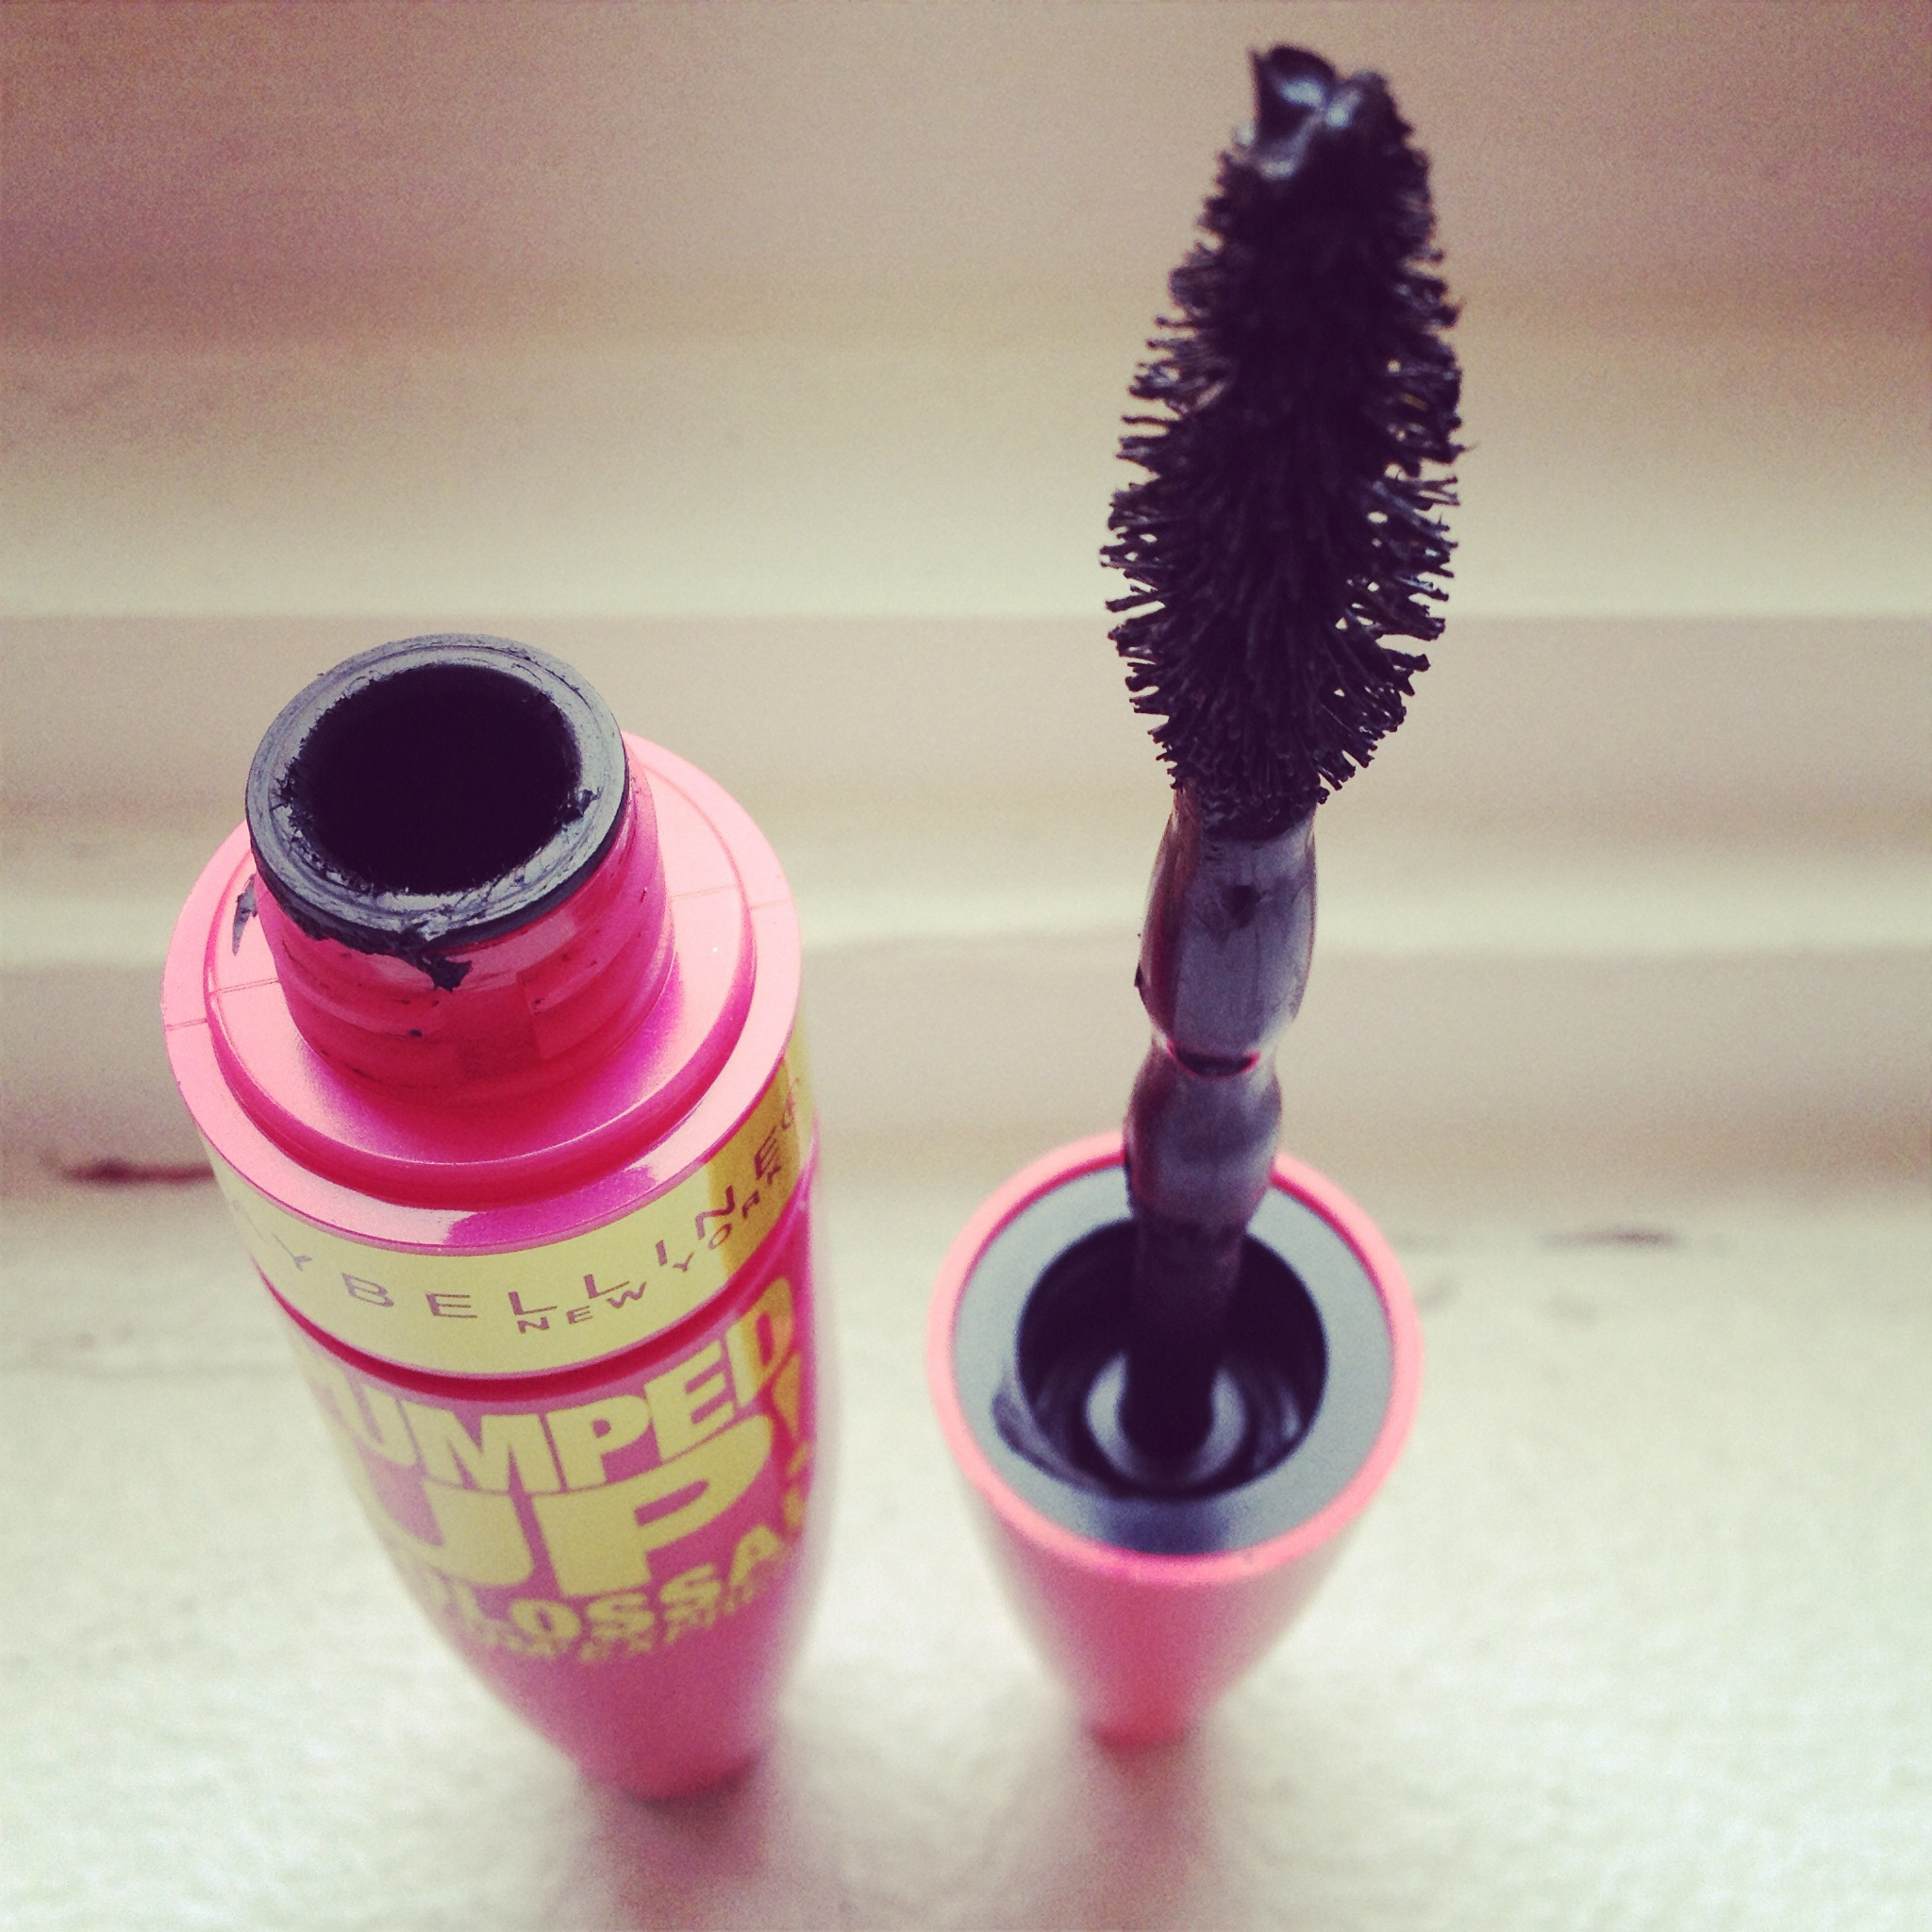 653d8150317 Maybelline Volum' Express Pumped Up! Colossal Mascara reviews in ...